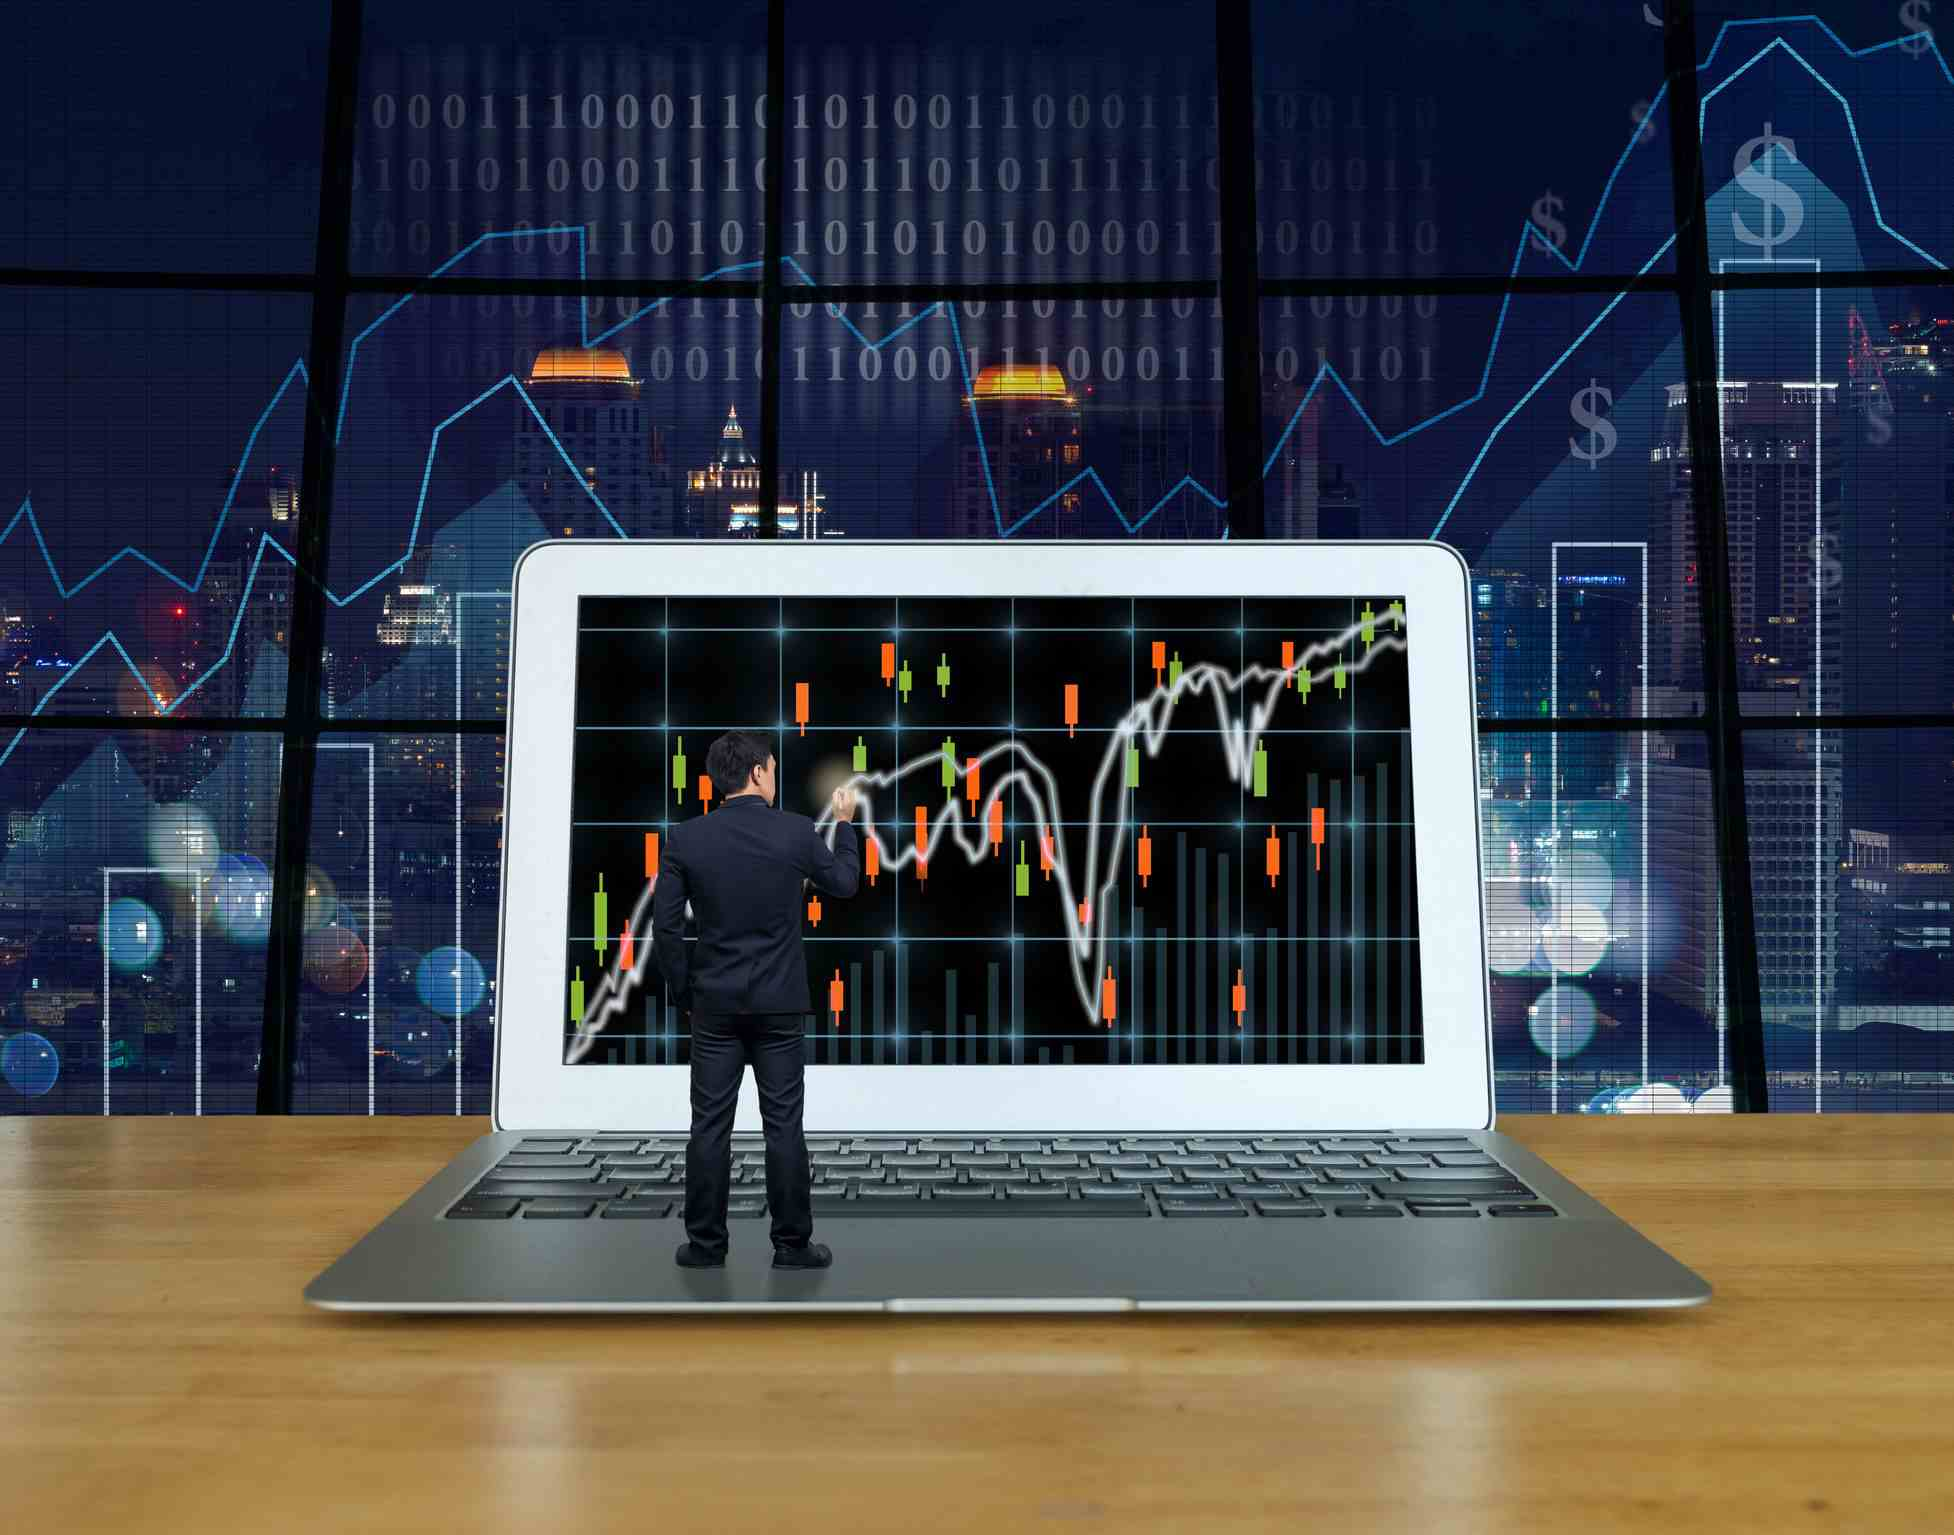 forex technical analysis tools brandon kelly cryptotrader